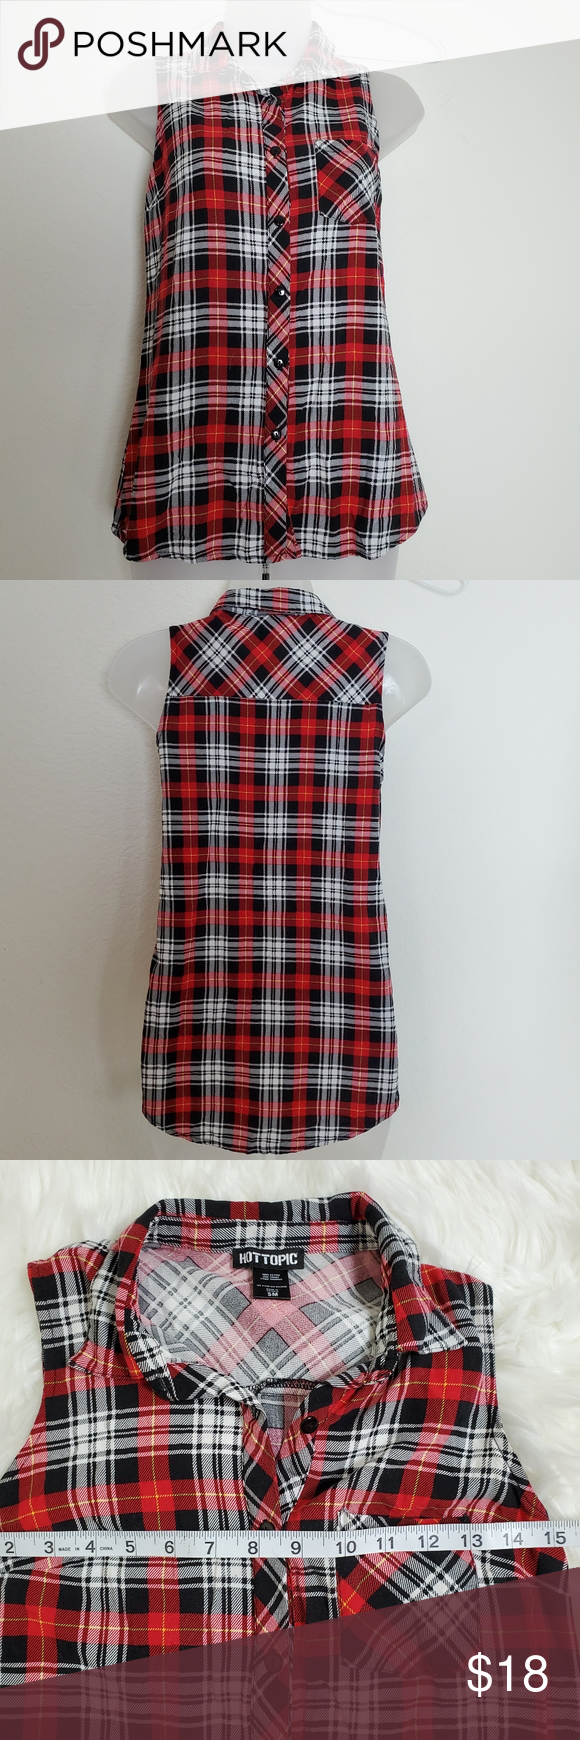 Hot Topic Plaid Sleeveless Shirt Hot Topic red, black & white Plaid Sleeveless Shirt. Good preowned condition. Front button closure. Hot Topic Tops #hottopicclothes Hot Topic Plaid Sleeveless Shirt Hot Topic red, black & white Plaid Sleeveless Shirt. Good preowned condition. Front button closure. Hot Topic Tops #hottopicclothes